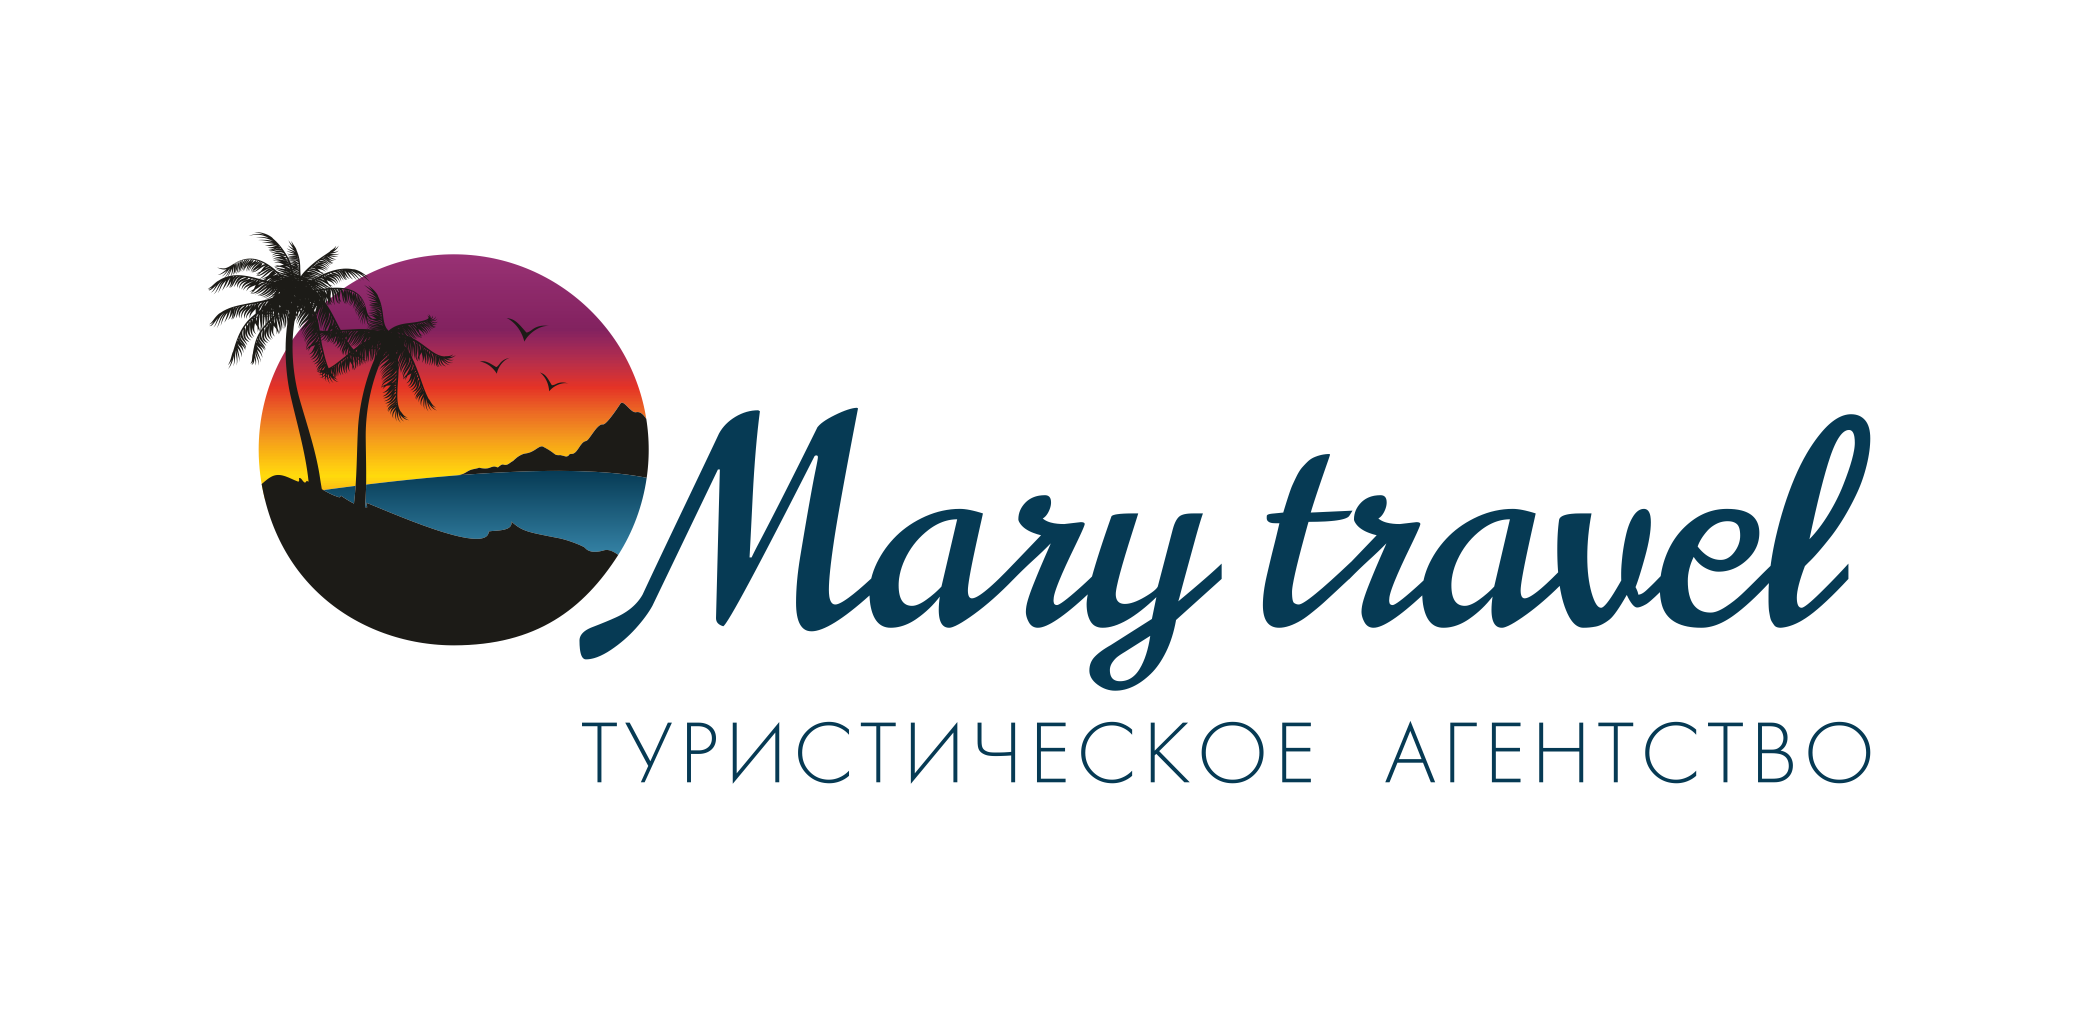 marytravel.menodom.ru